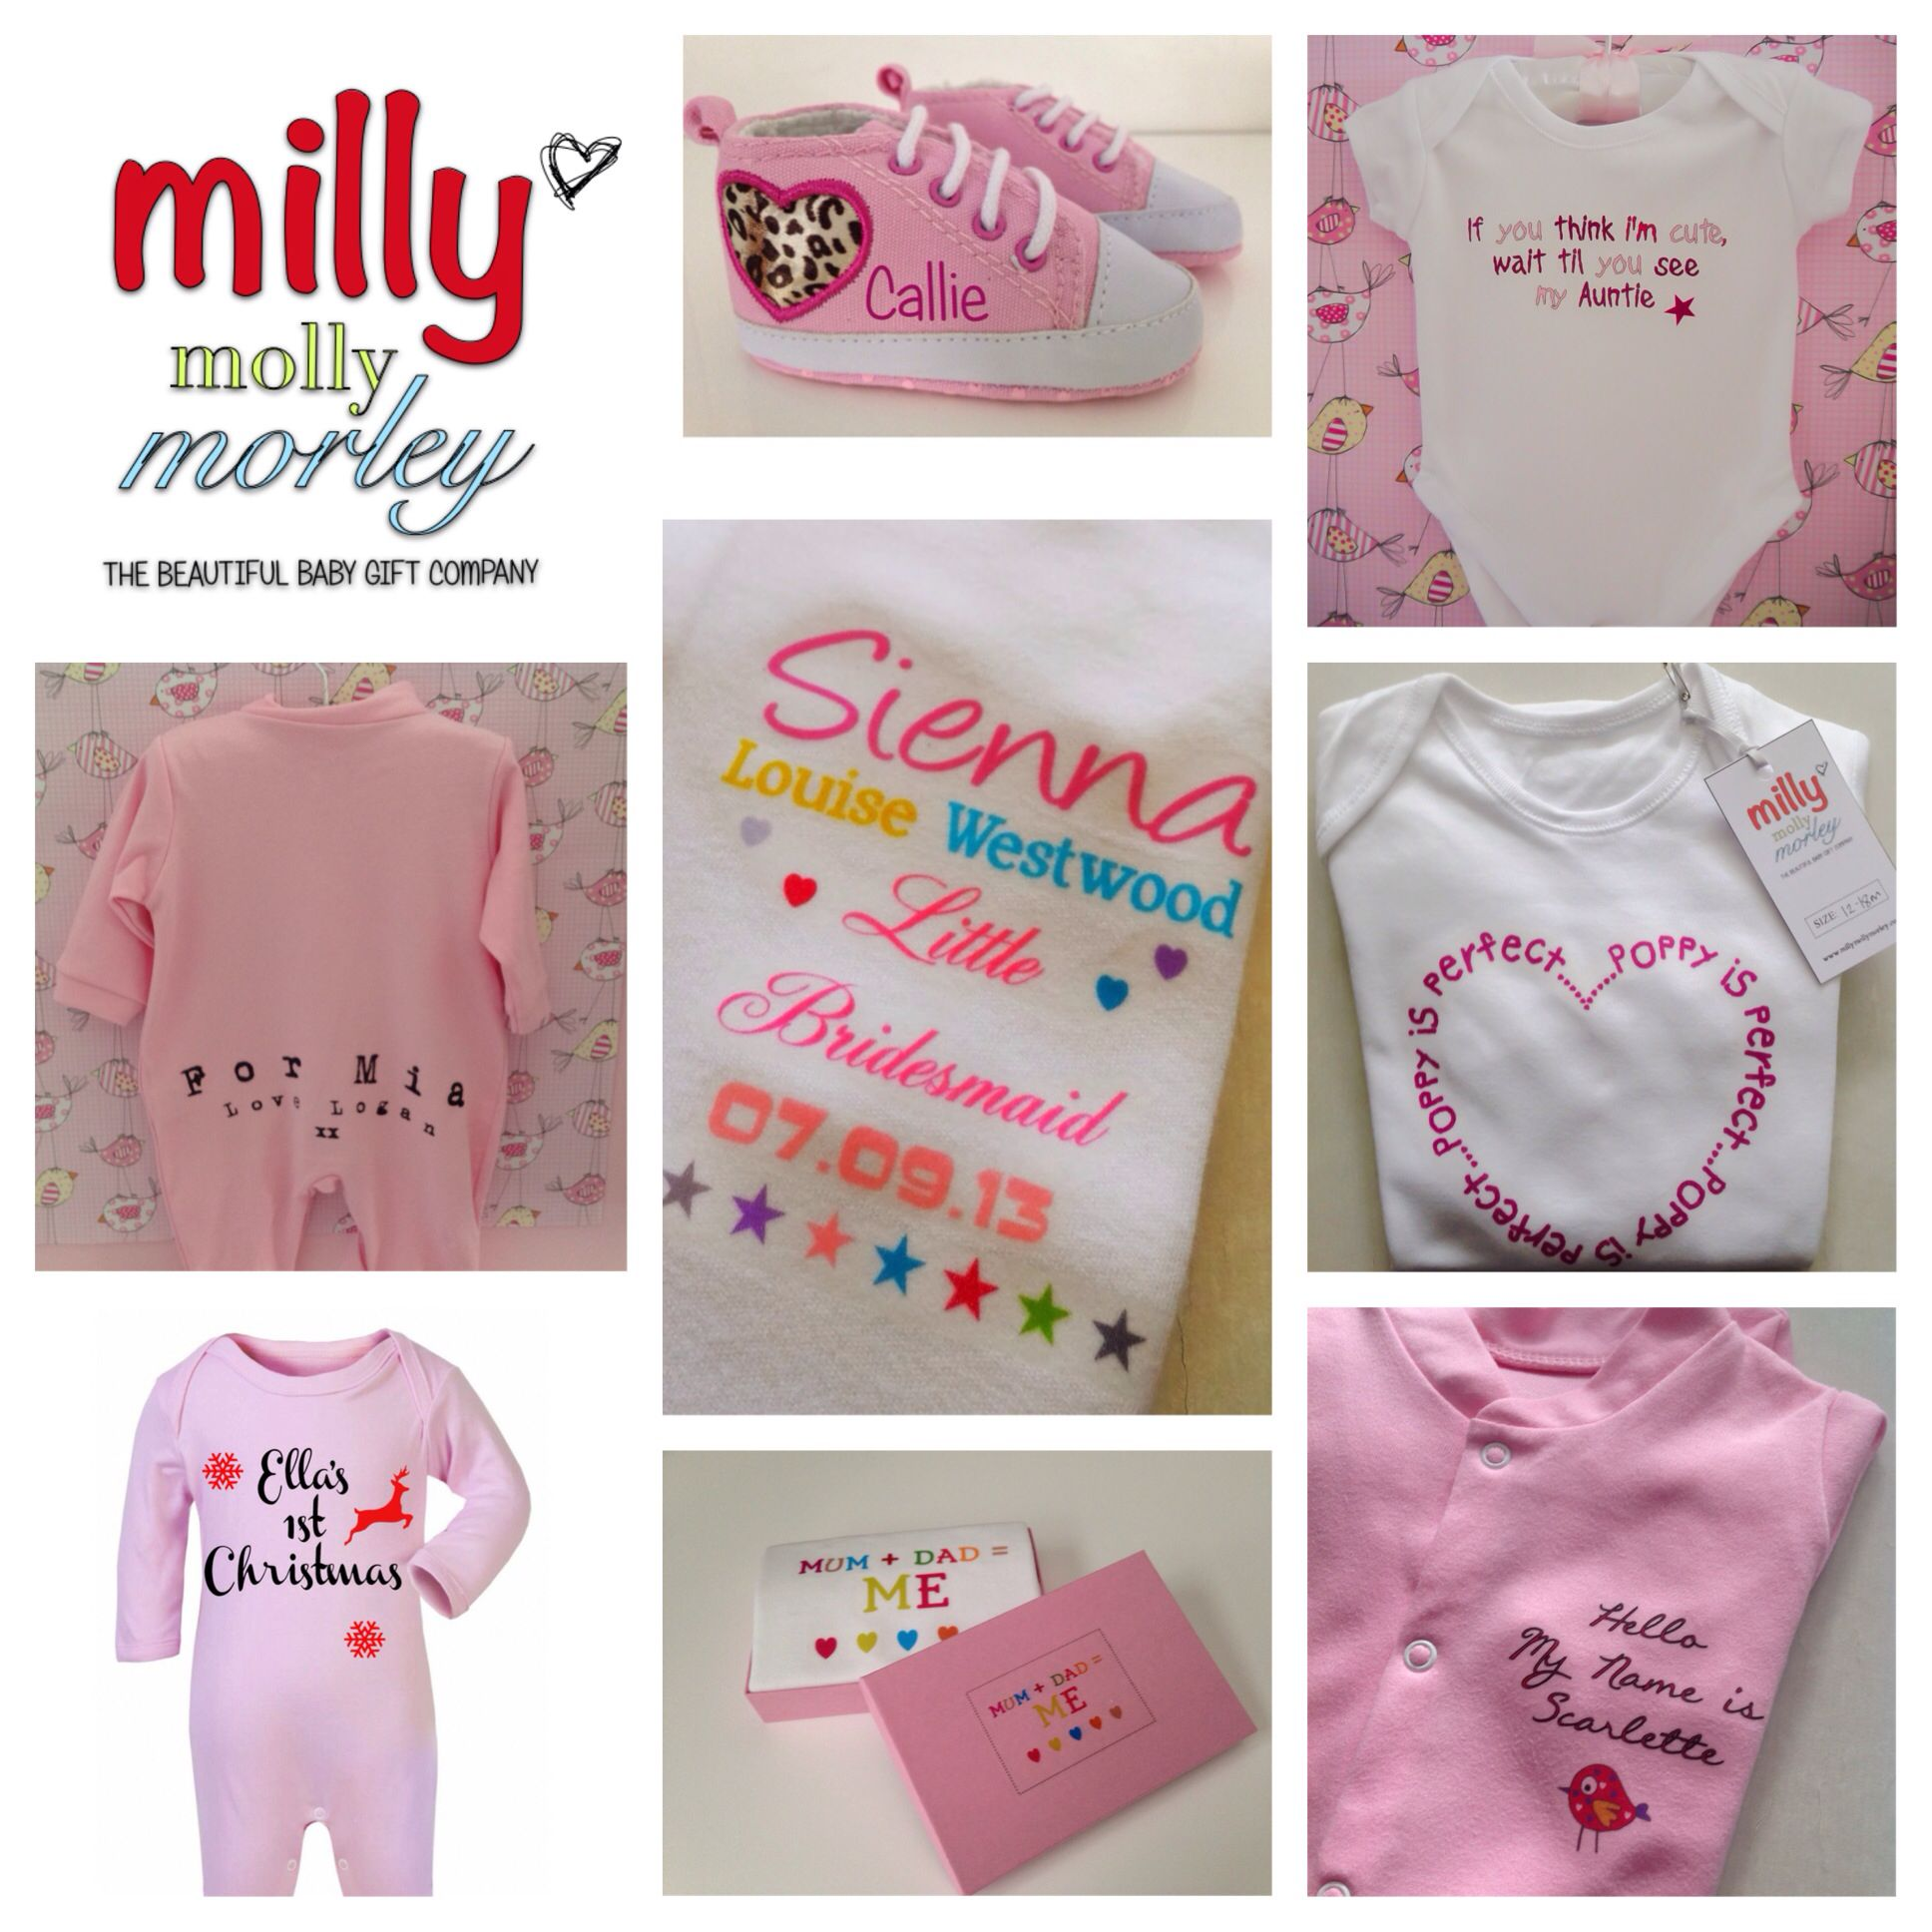 Millymollymorley unique personalised baby gifts milly millymollymorley unique personalised baby gifts negle Image collections